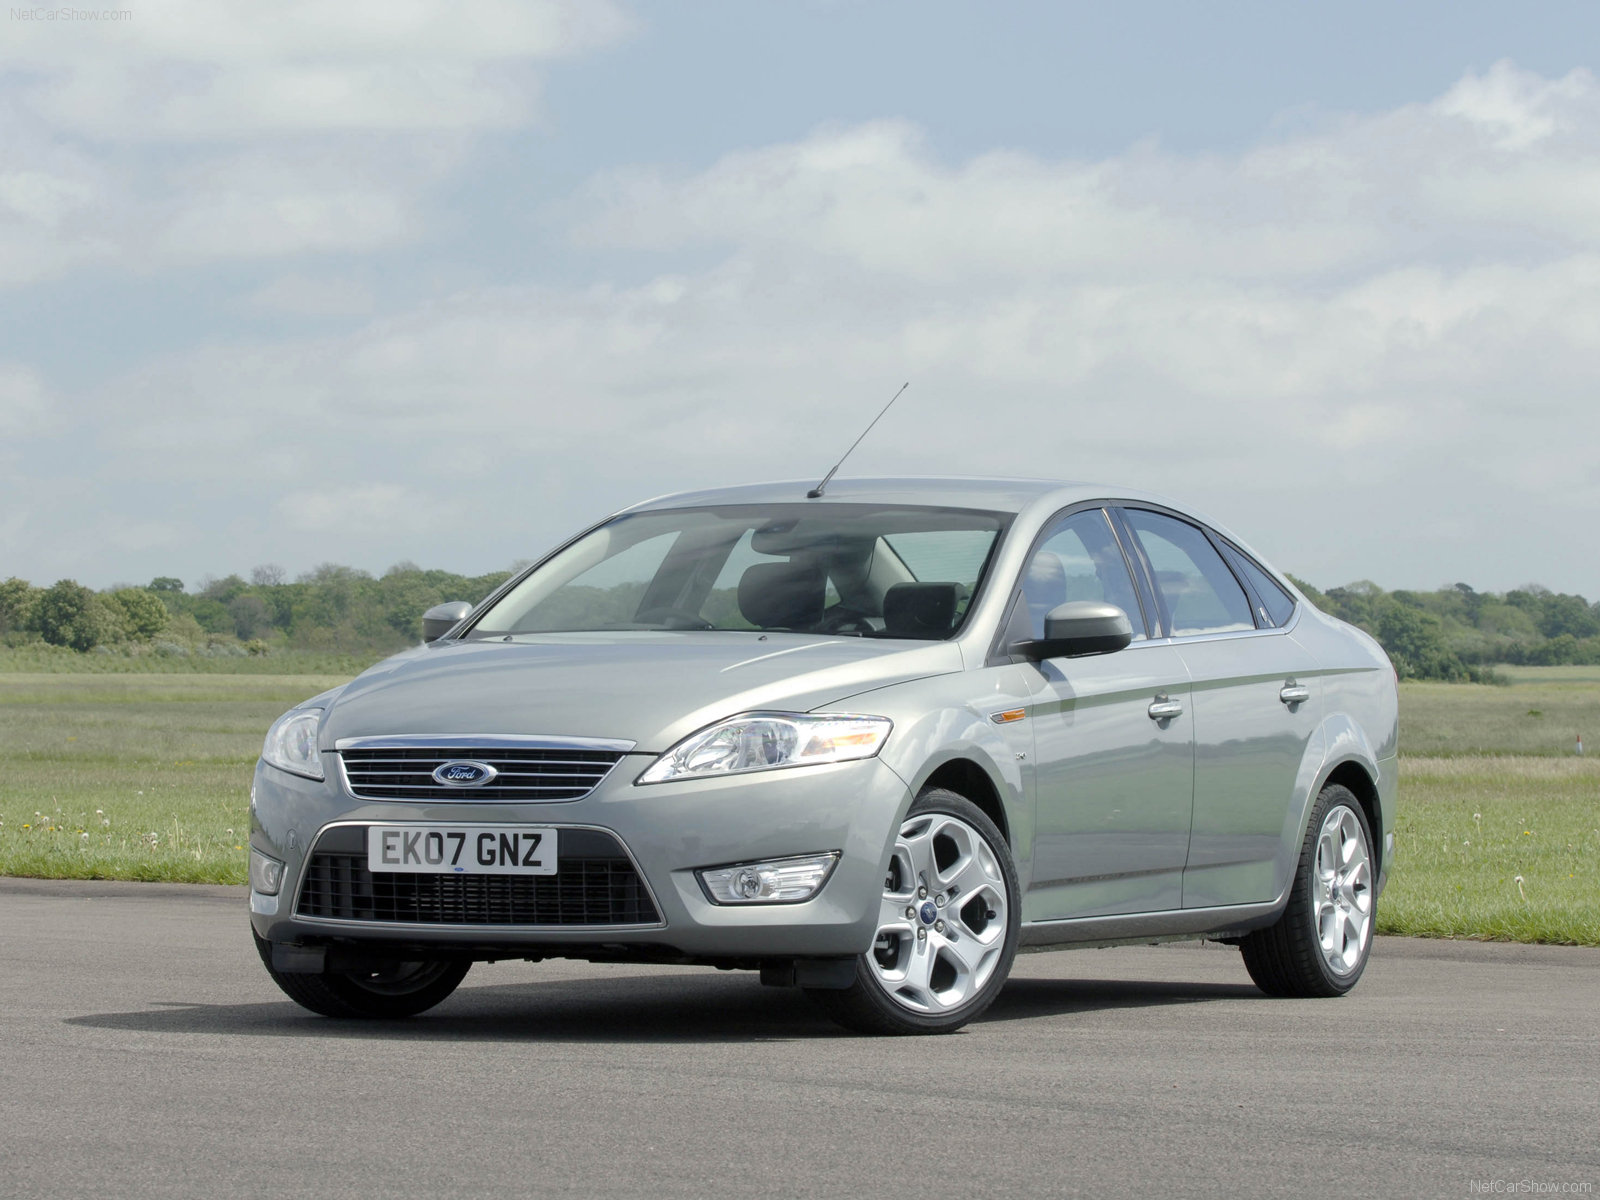 2007 Ford Mondeo Concept photo - 3